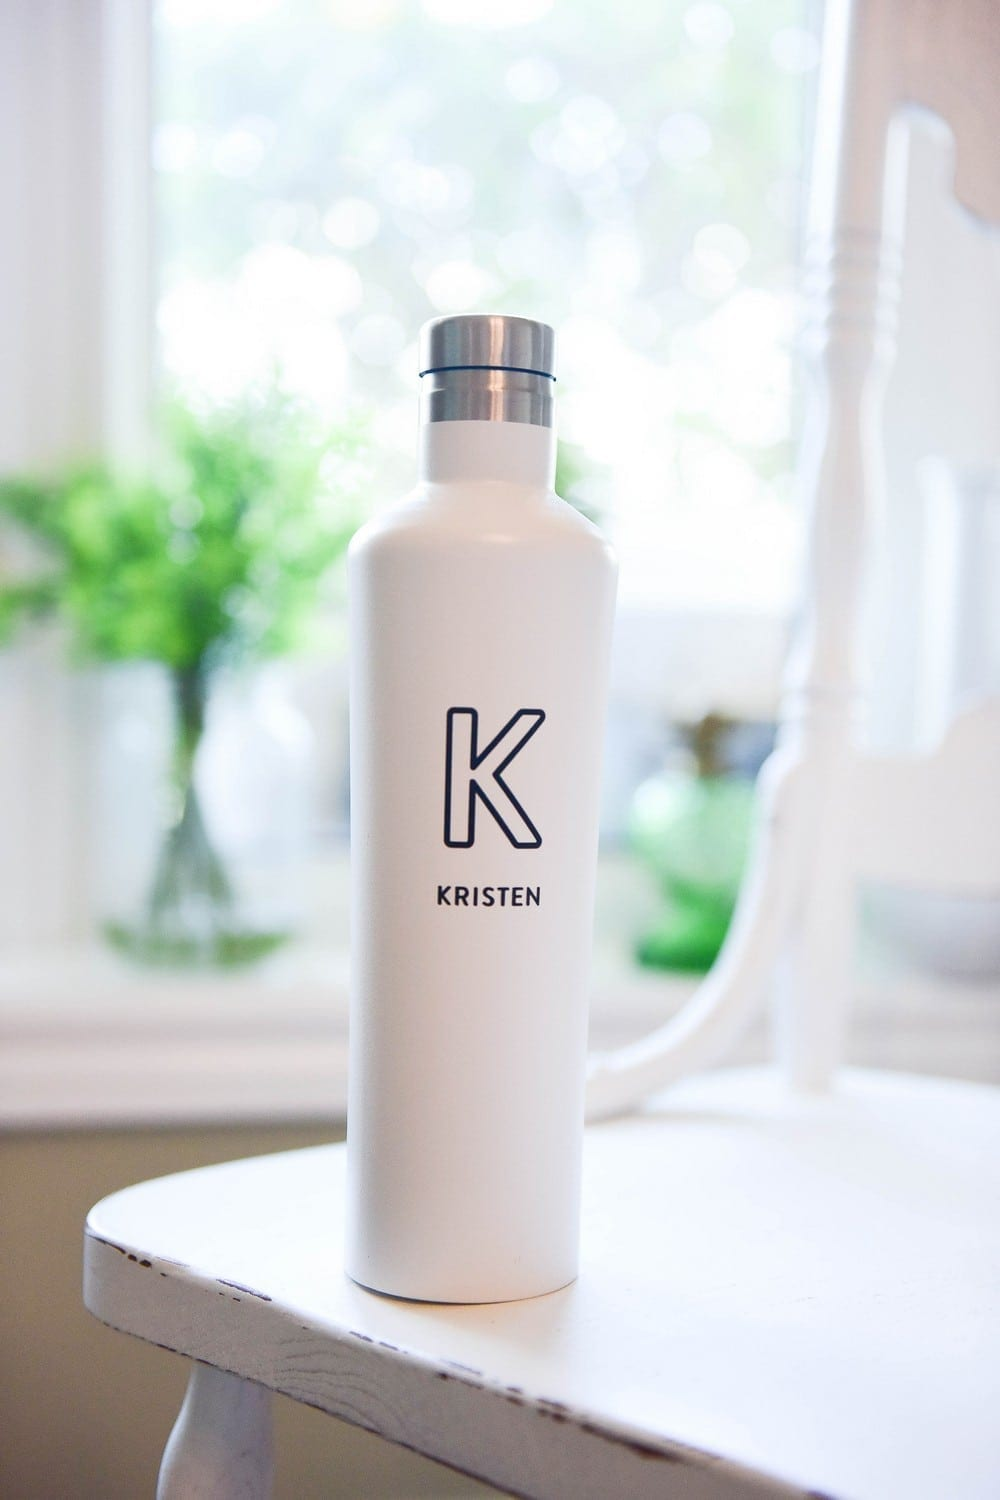 White Stainless Steel Water Bottle: $26 + $7 to personalize